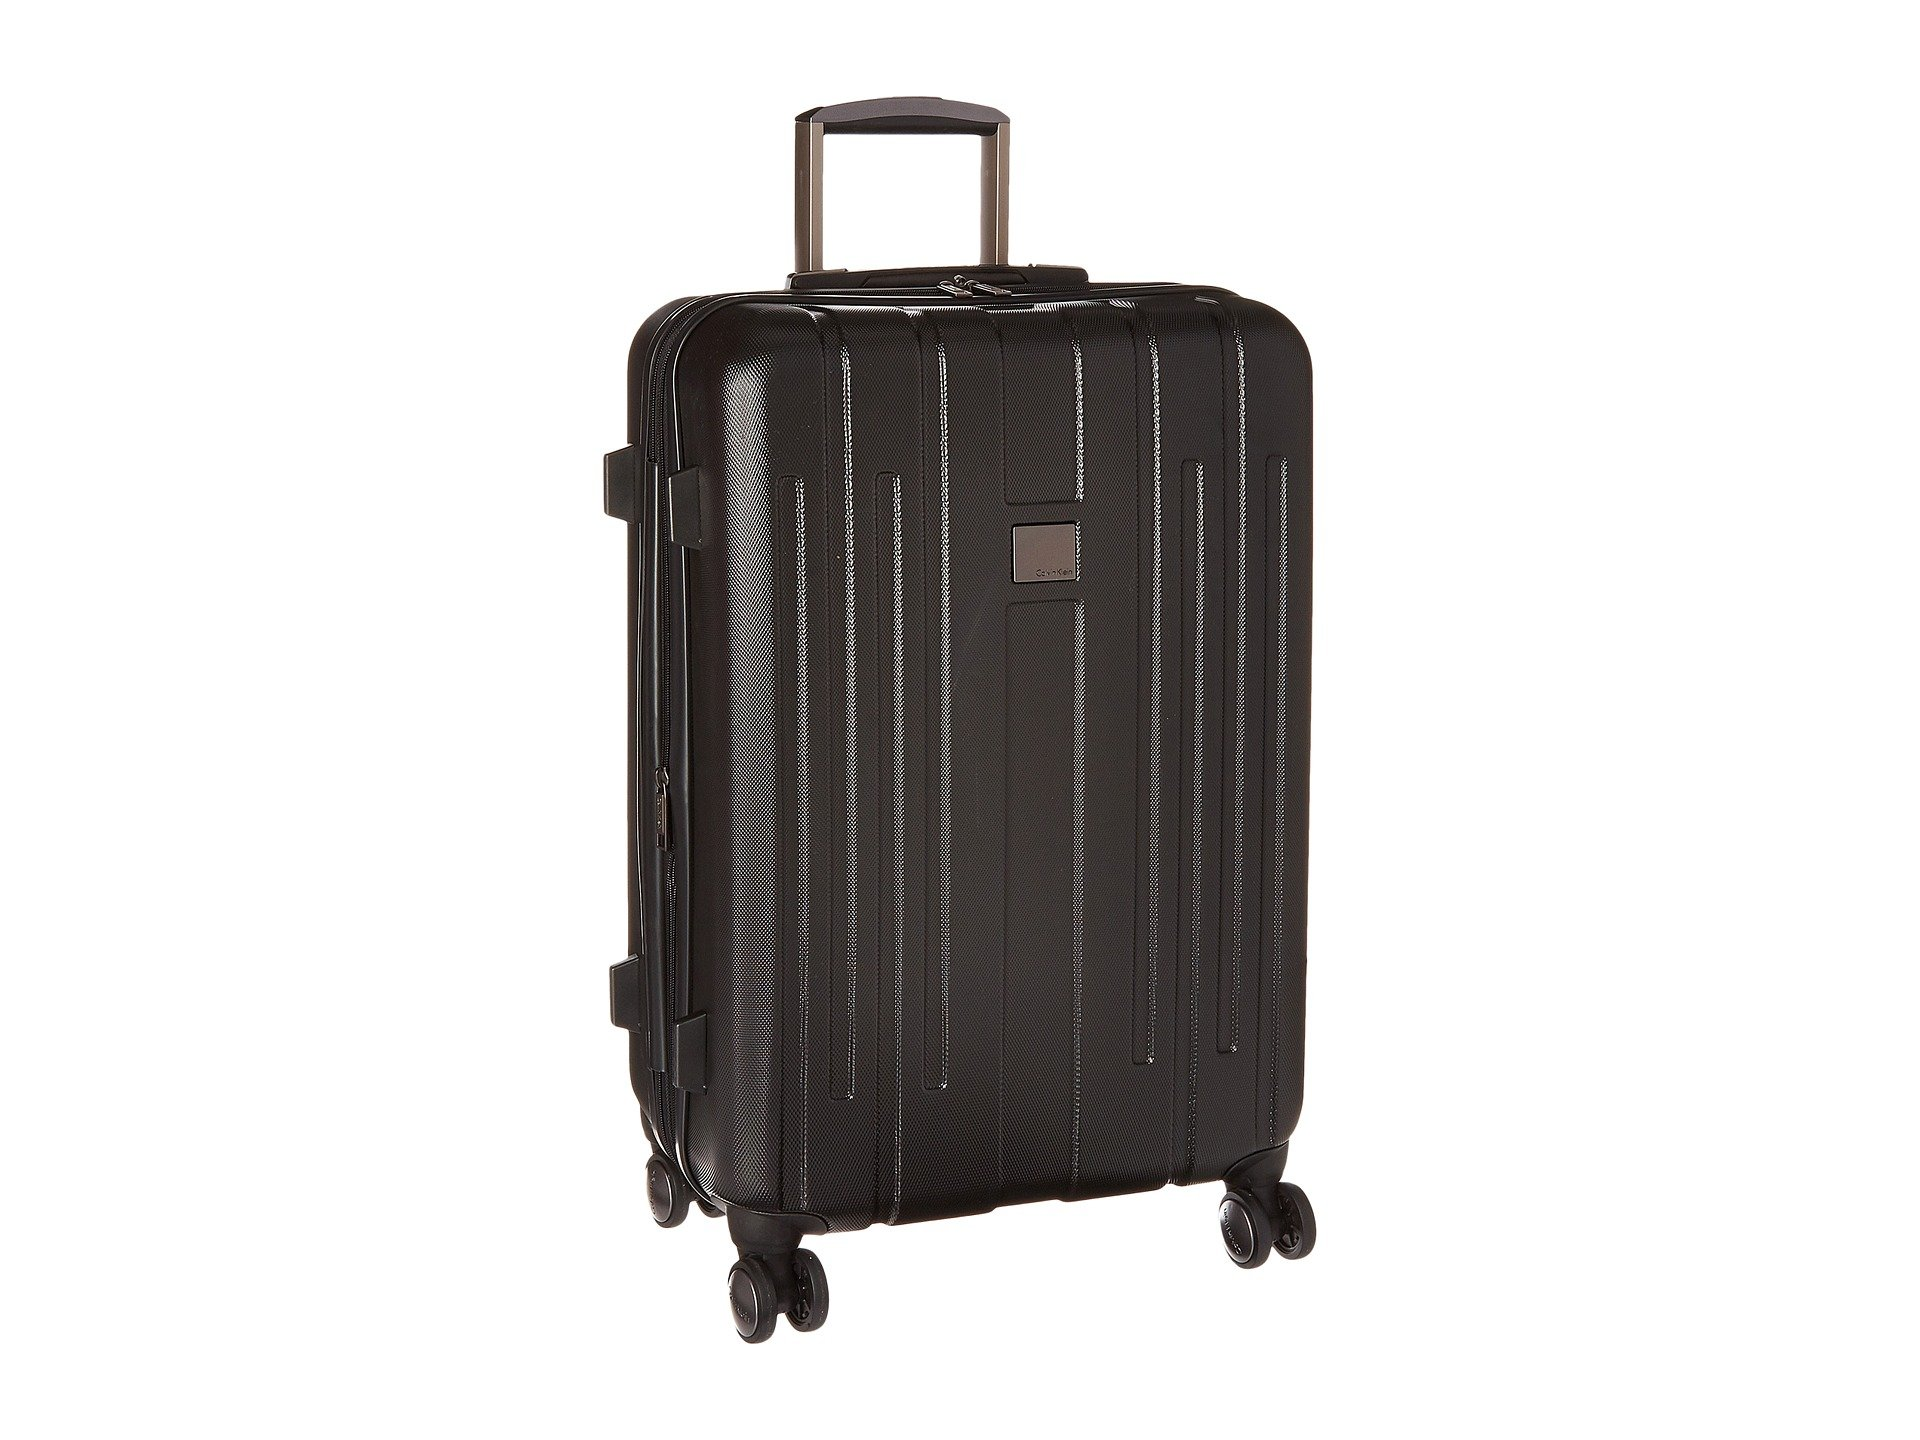 "Cortlandt 3.0 24"" Upright Suitcase"